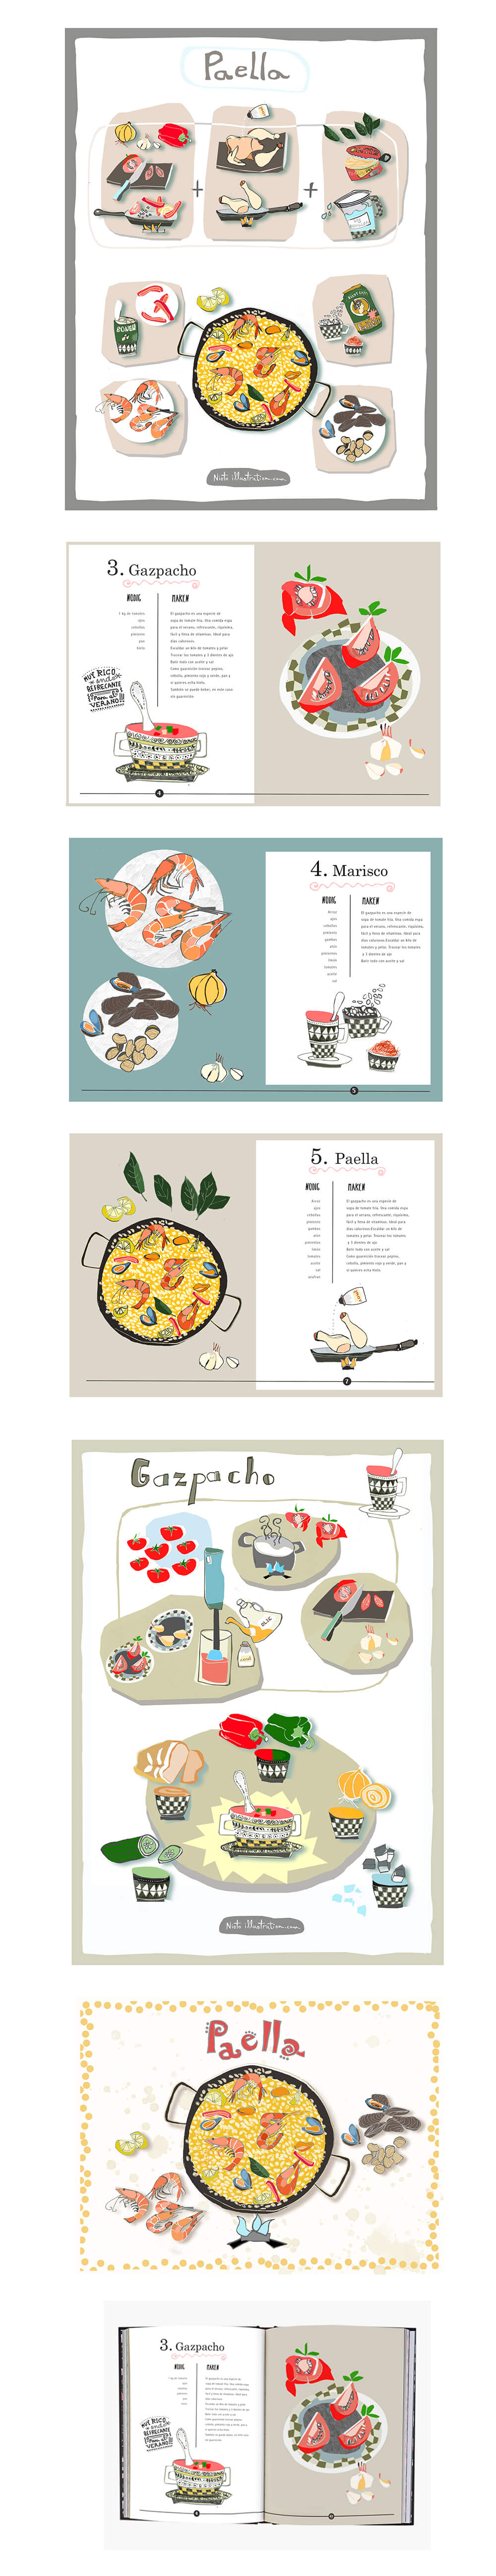 infographics illustration by Angeles Nieto